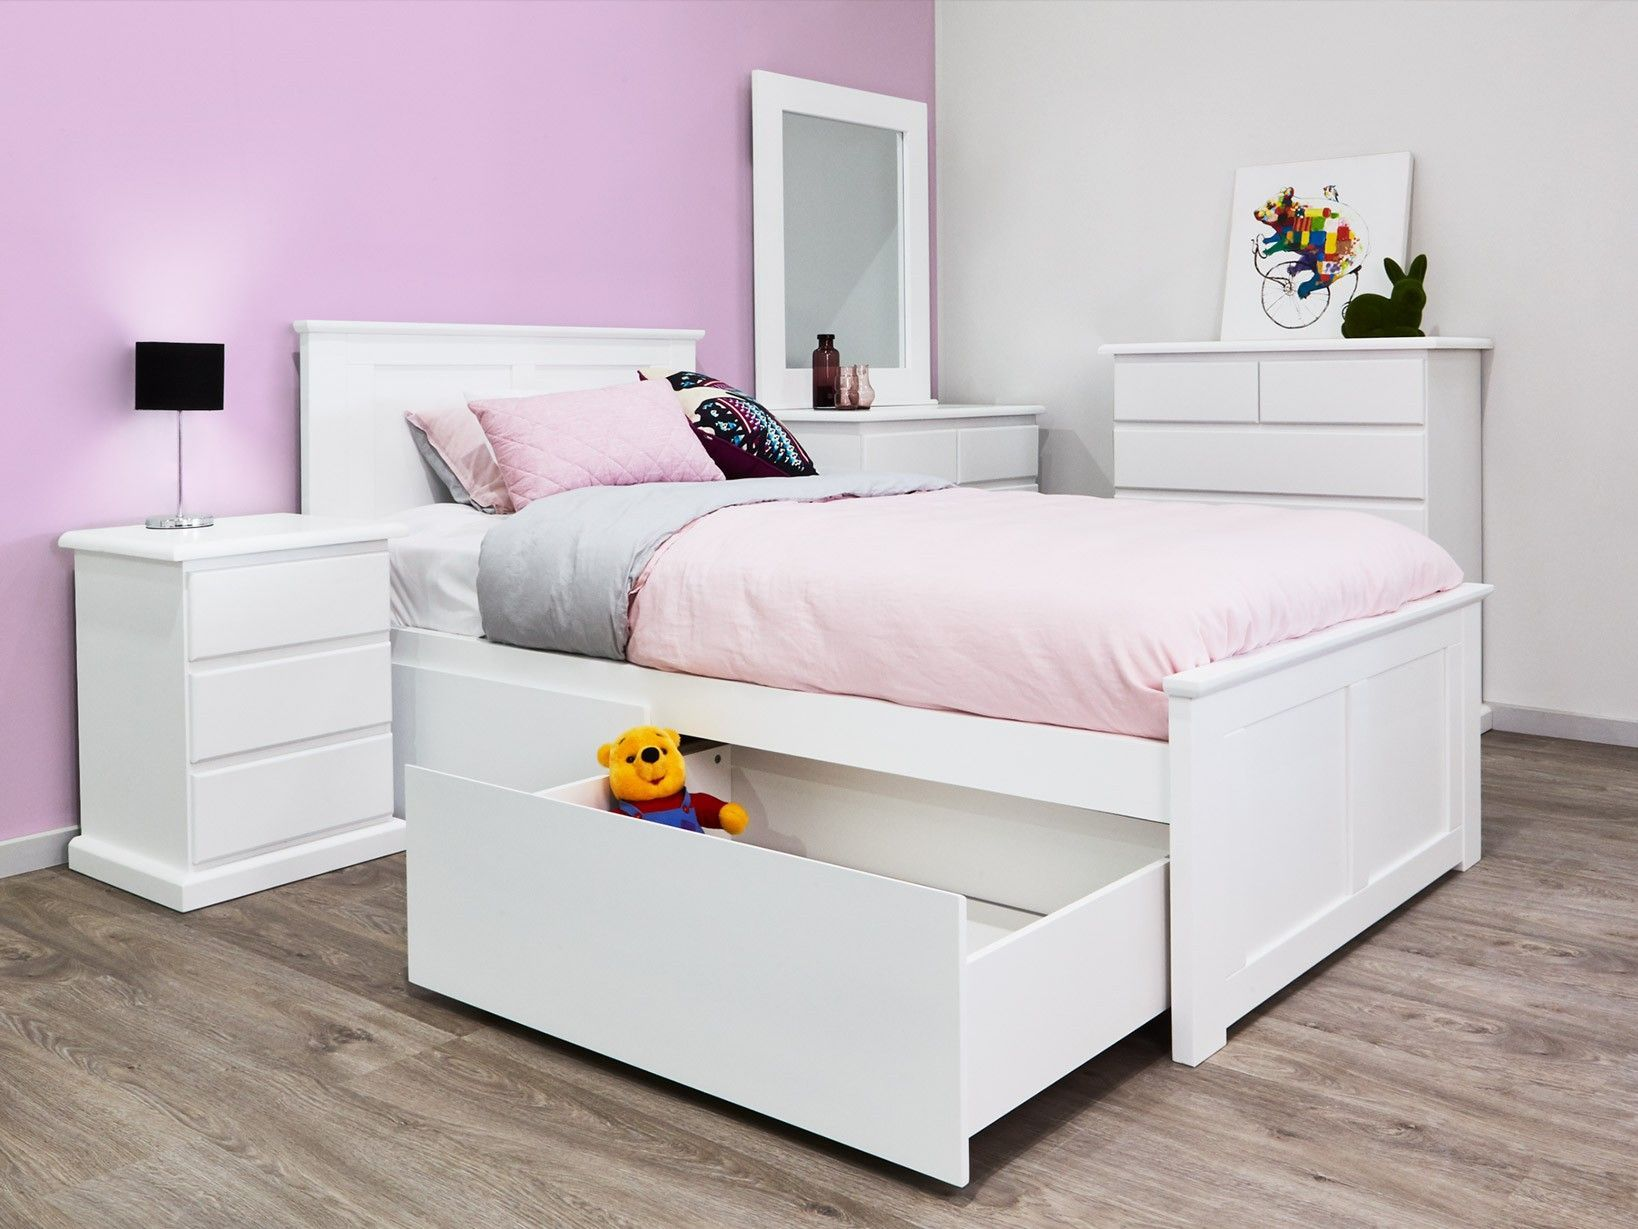 Sale Hardwood White King Single Beds With Storage 50 Off Rrp